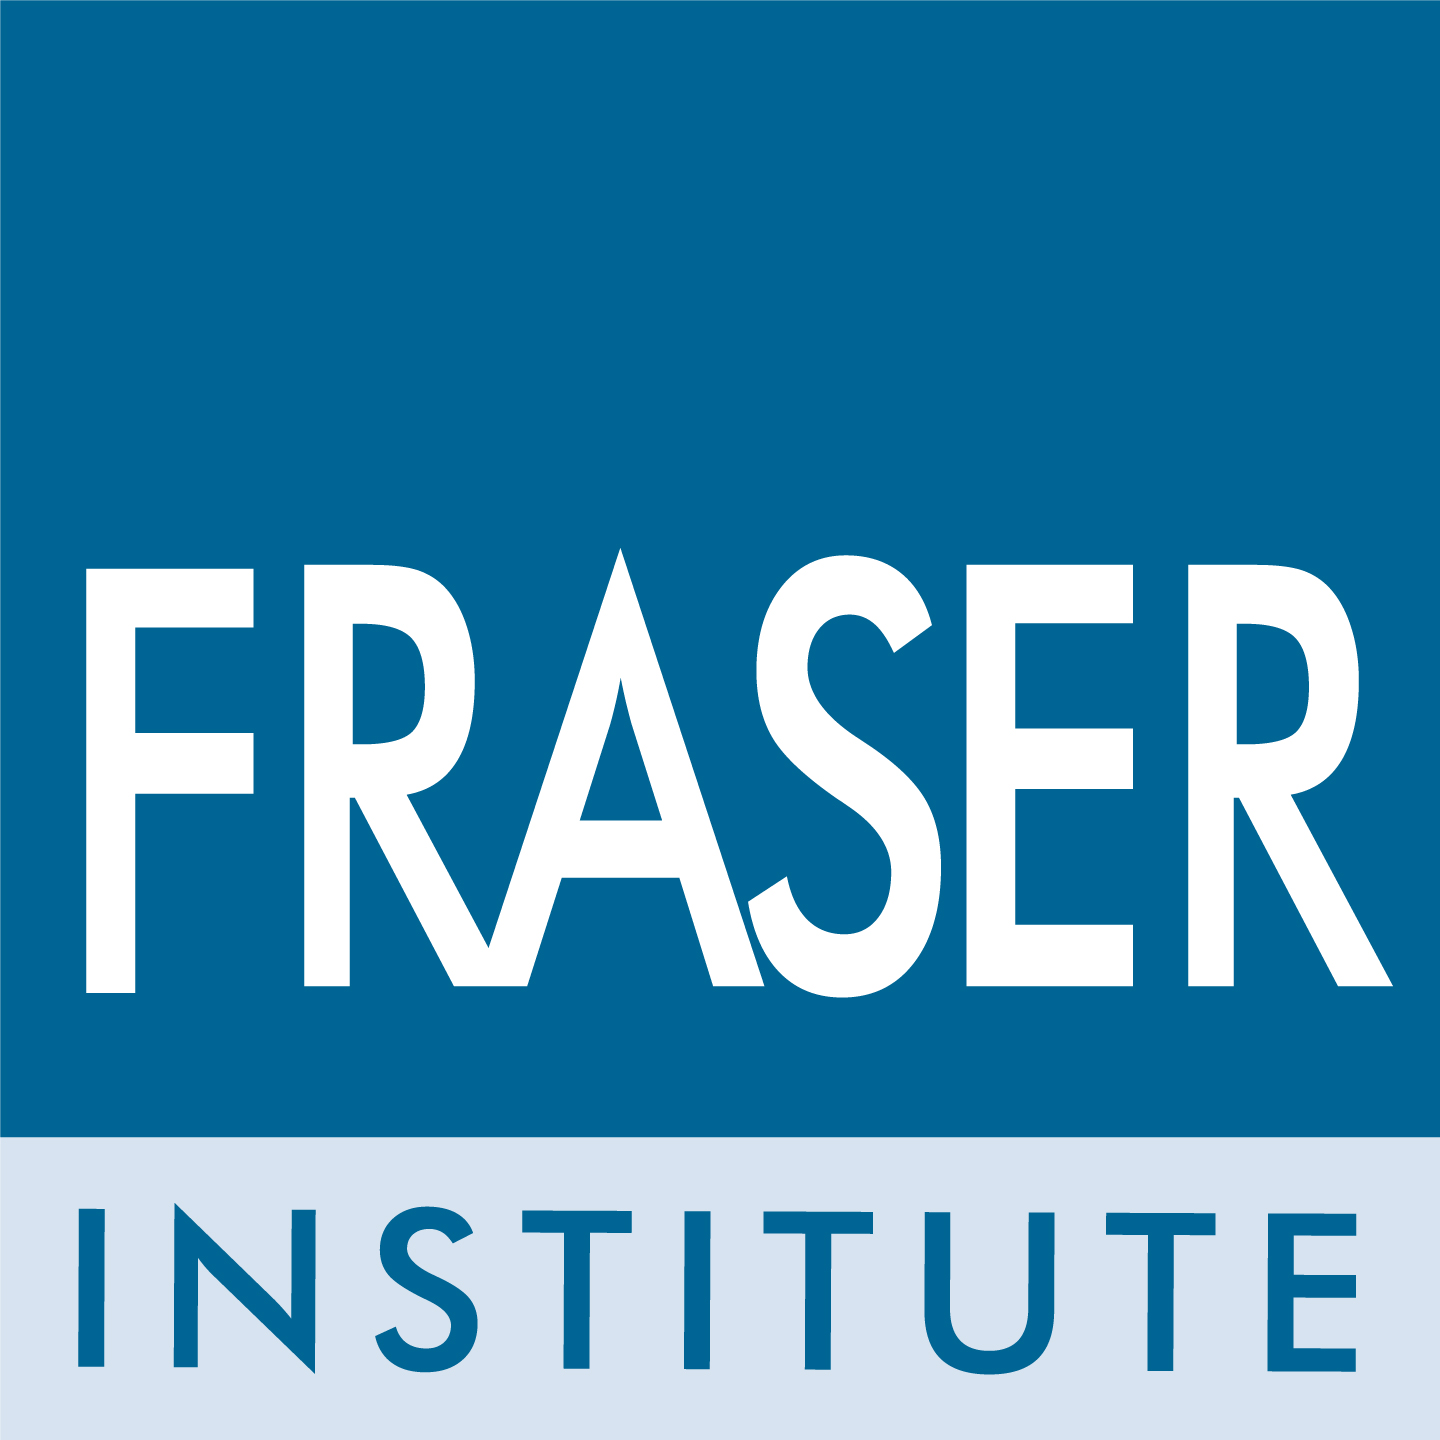 Fraser Institute News Release: Alberta's public-sector employees were paid 9